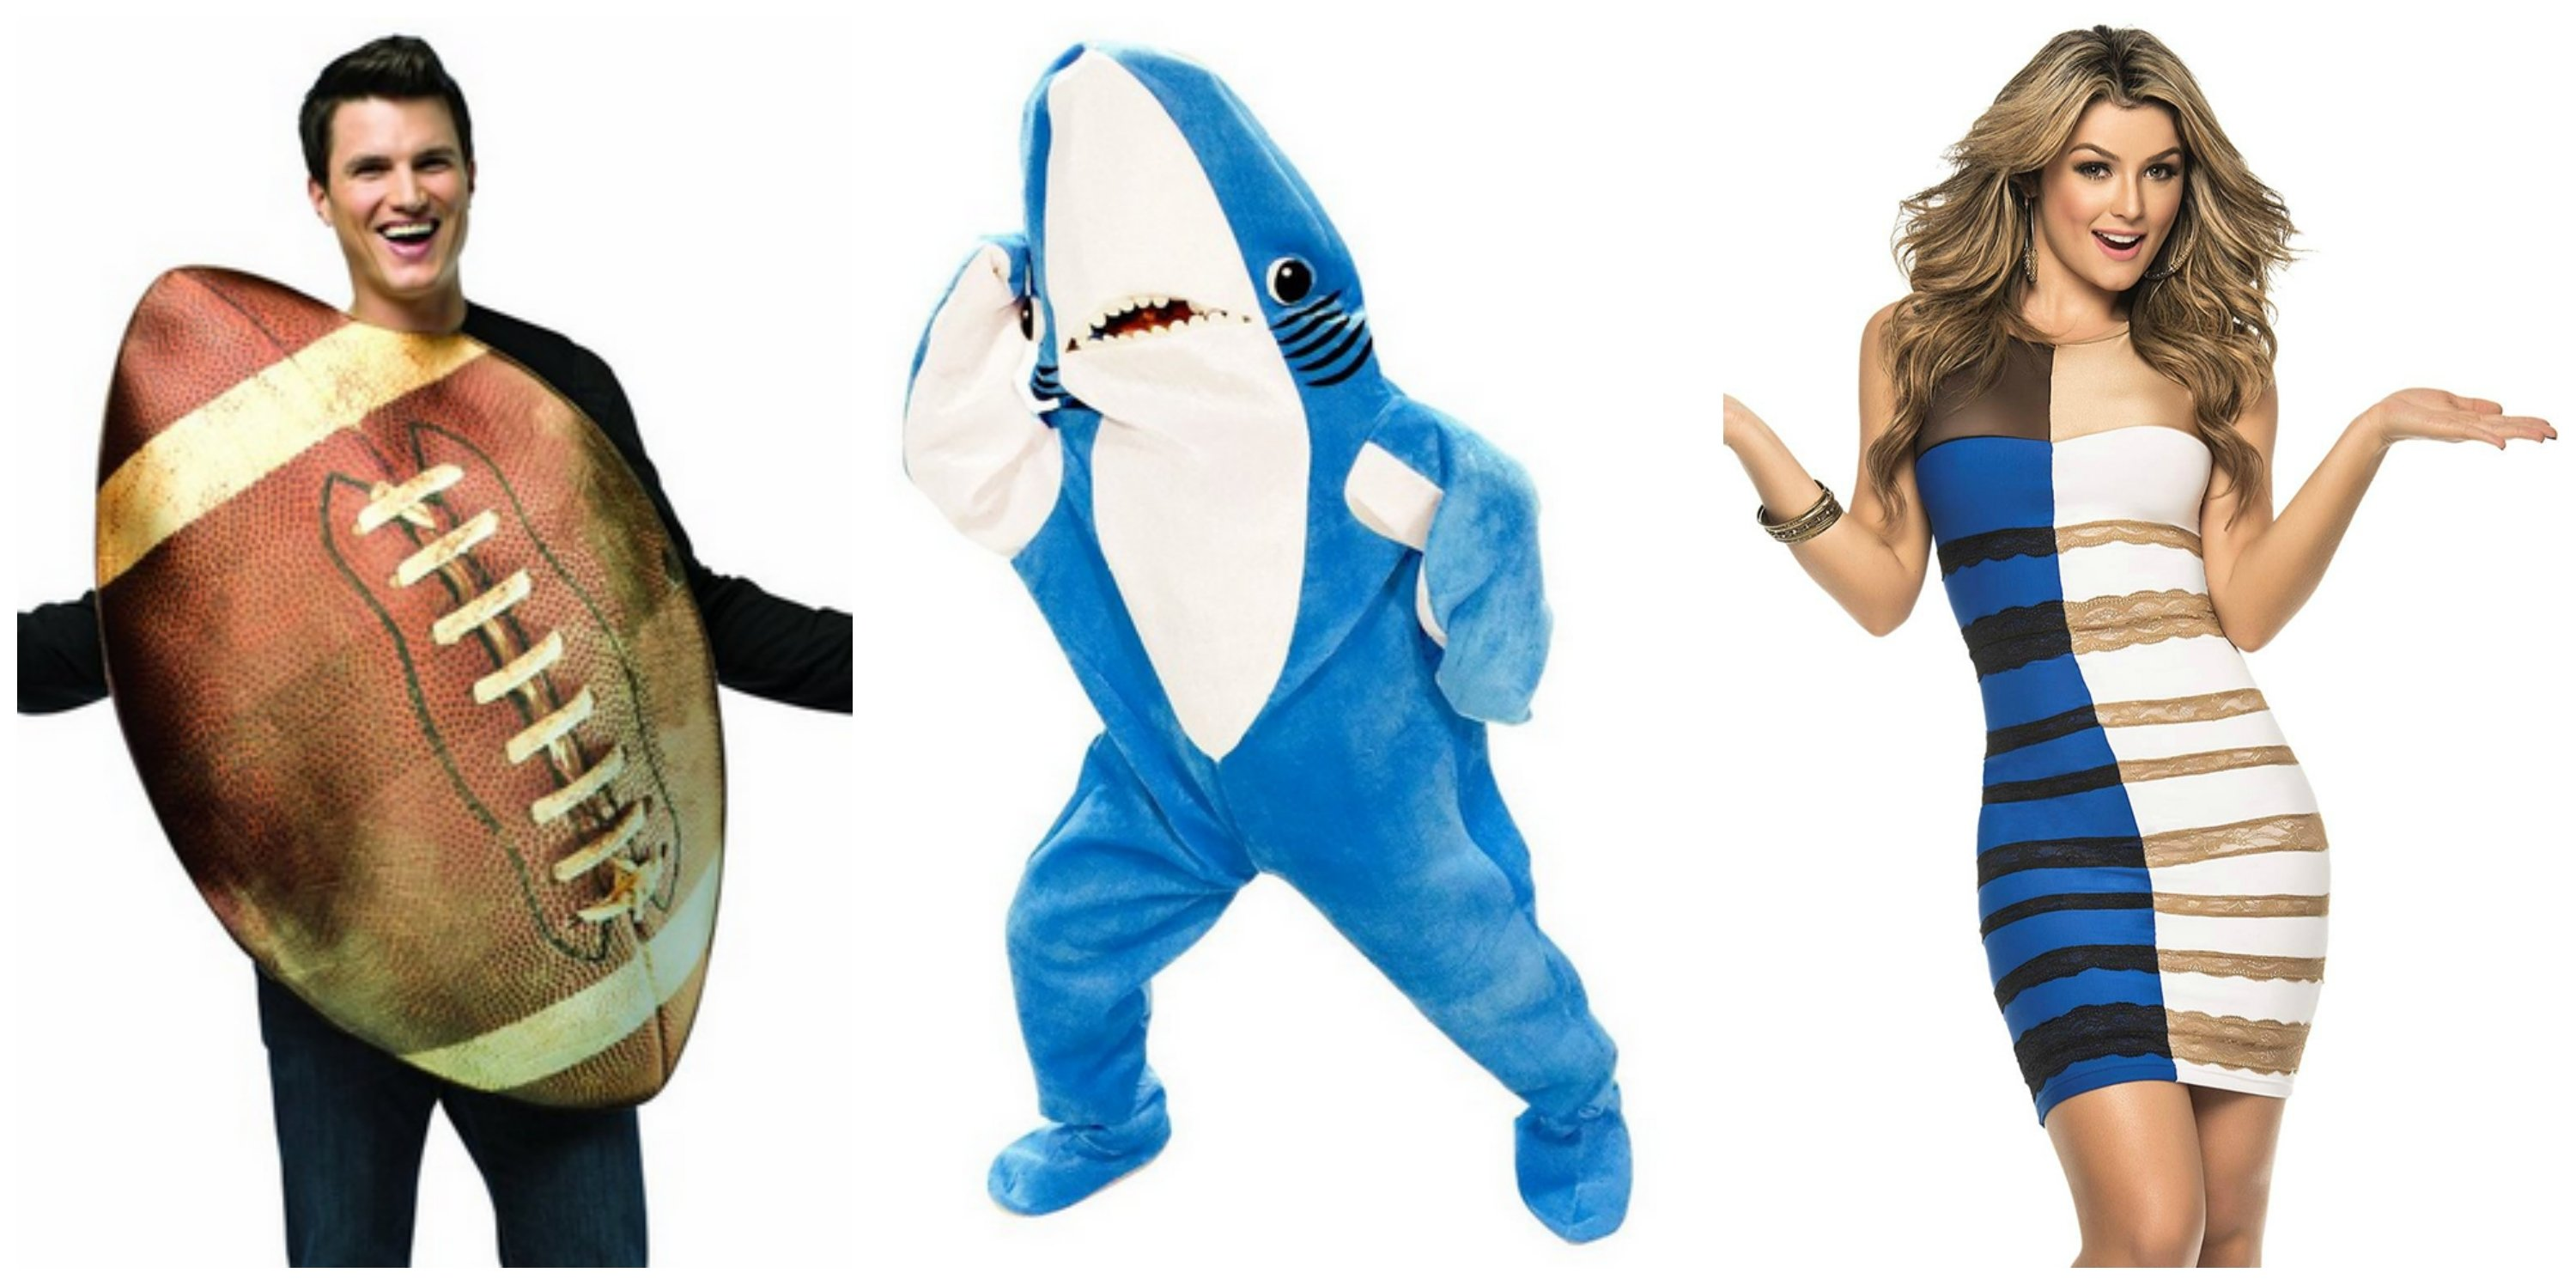 the 10 best halloween costumes inspiredpop culture - aol lifestyle